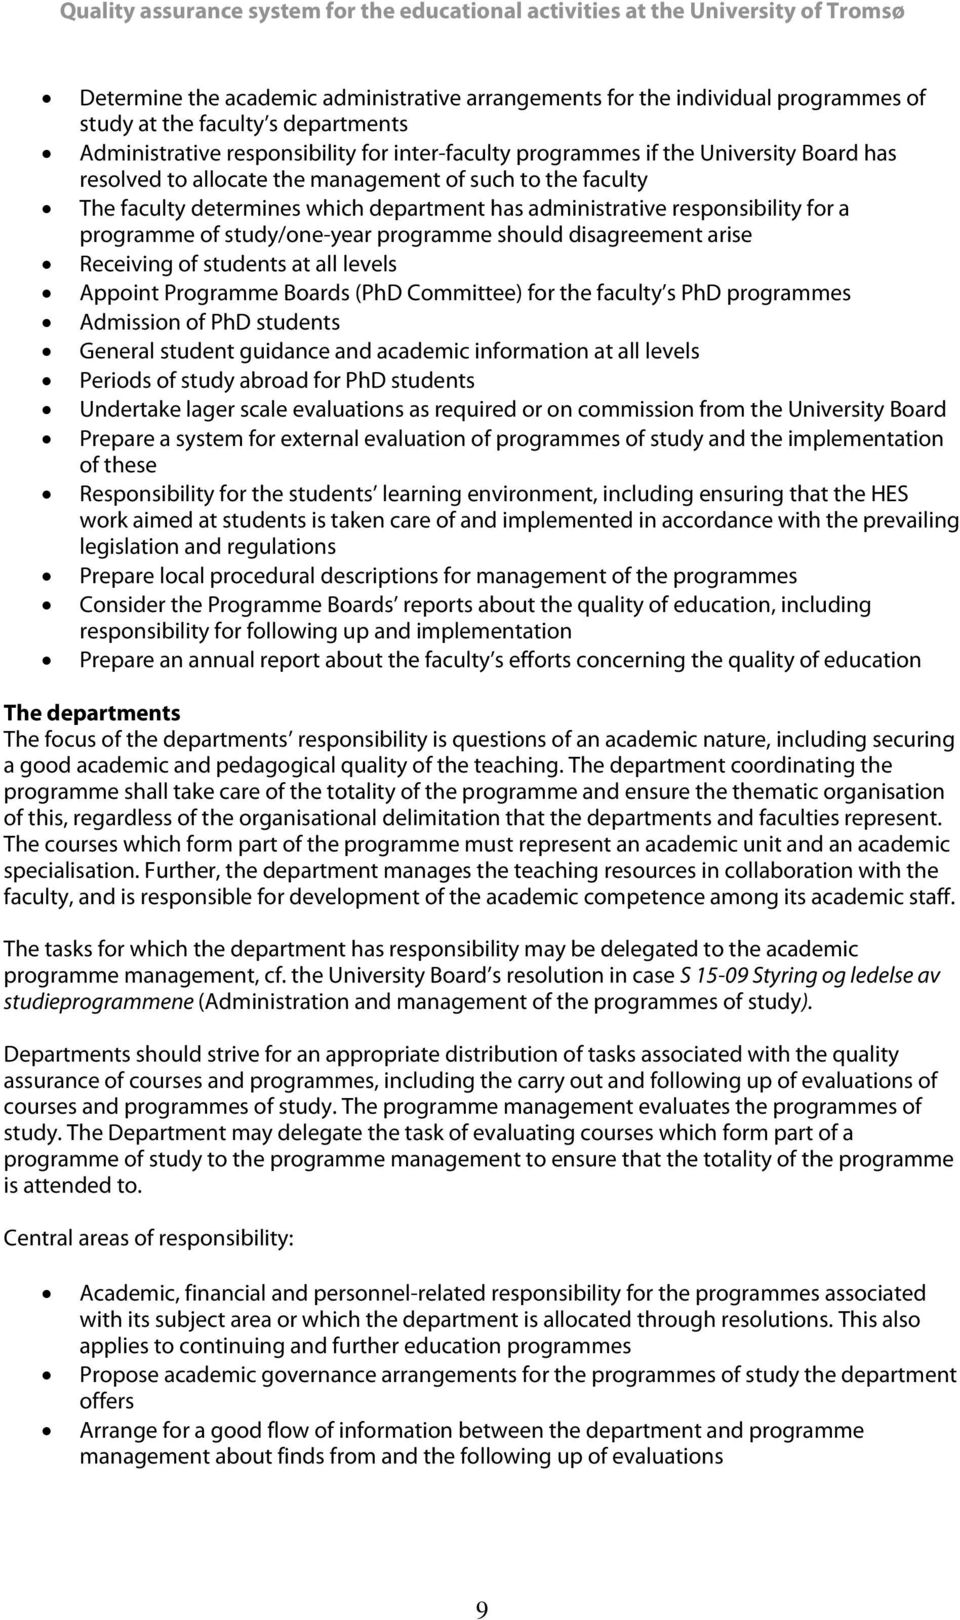 disagreement arise Receiving of students at all levels Appoint Programme Boards (PhD Committee) for the faculty s PhD programmes Admission of PhD students General student guidance and academic